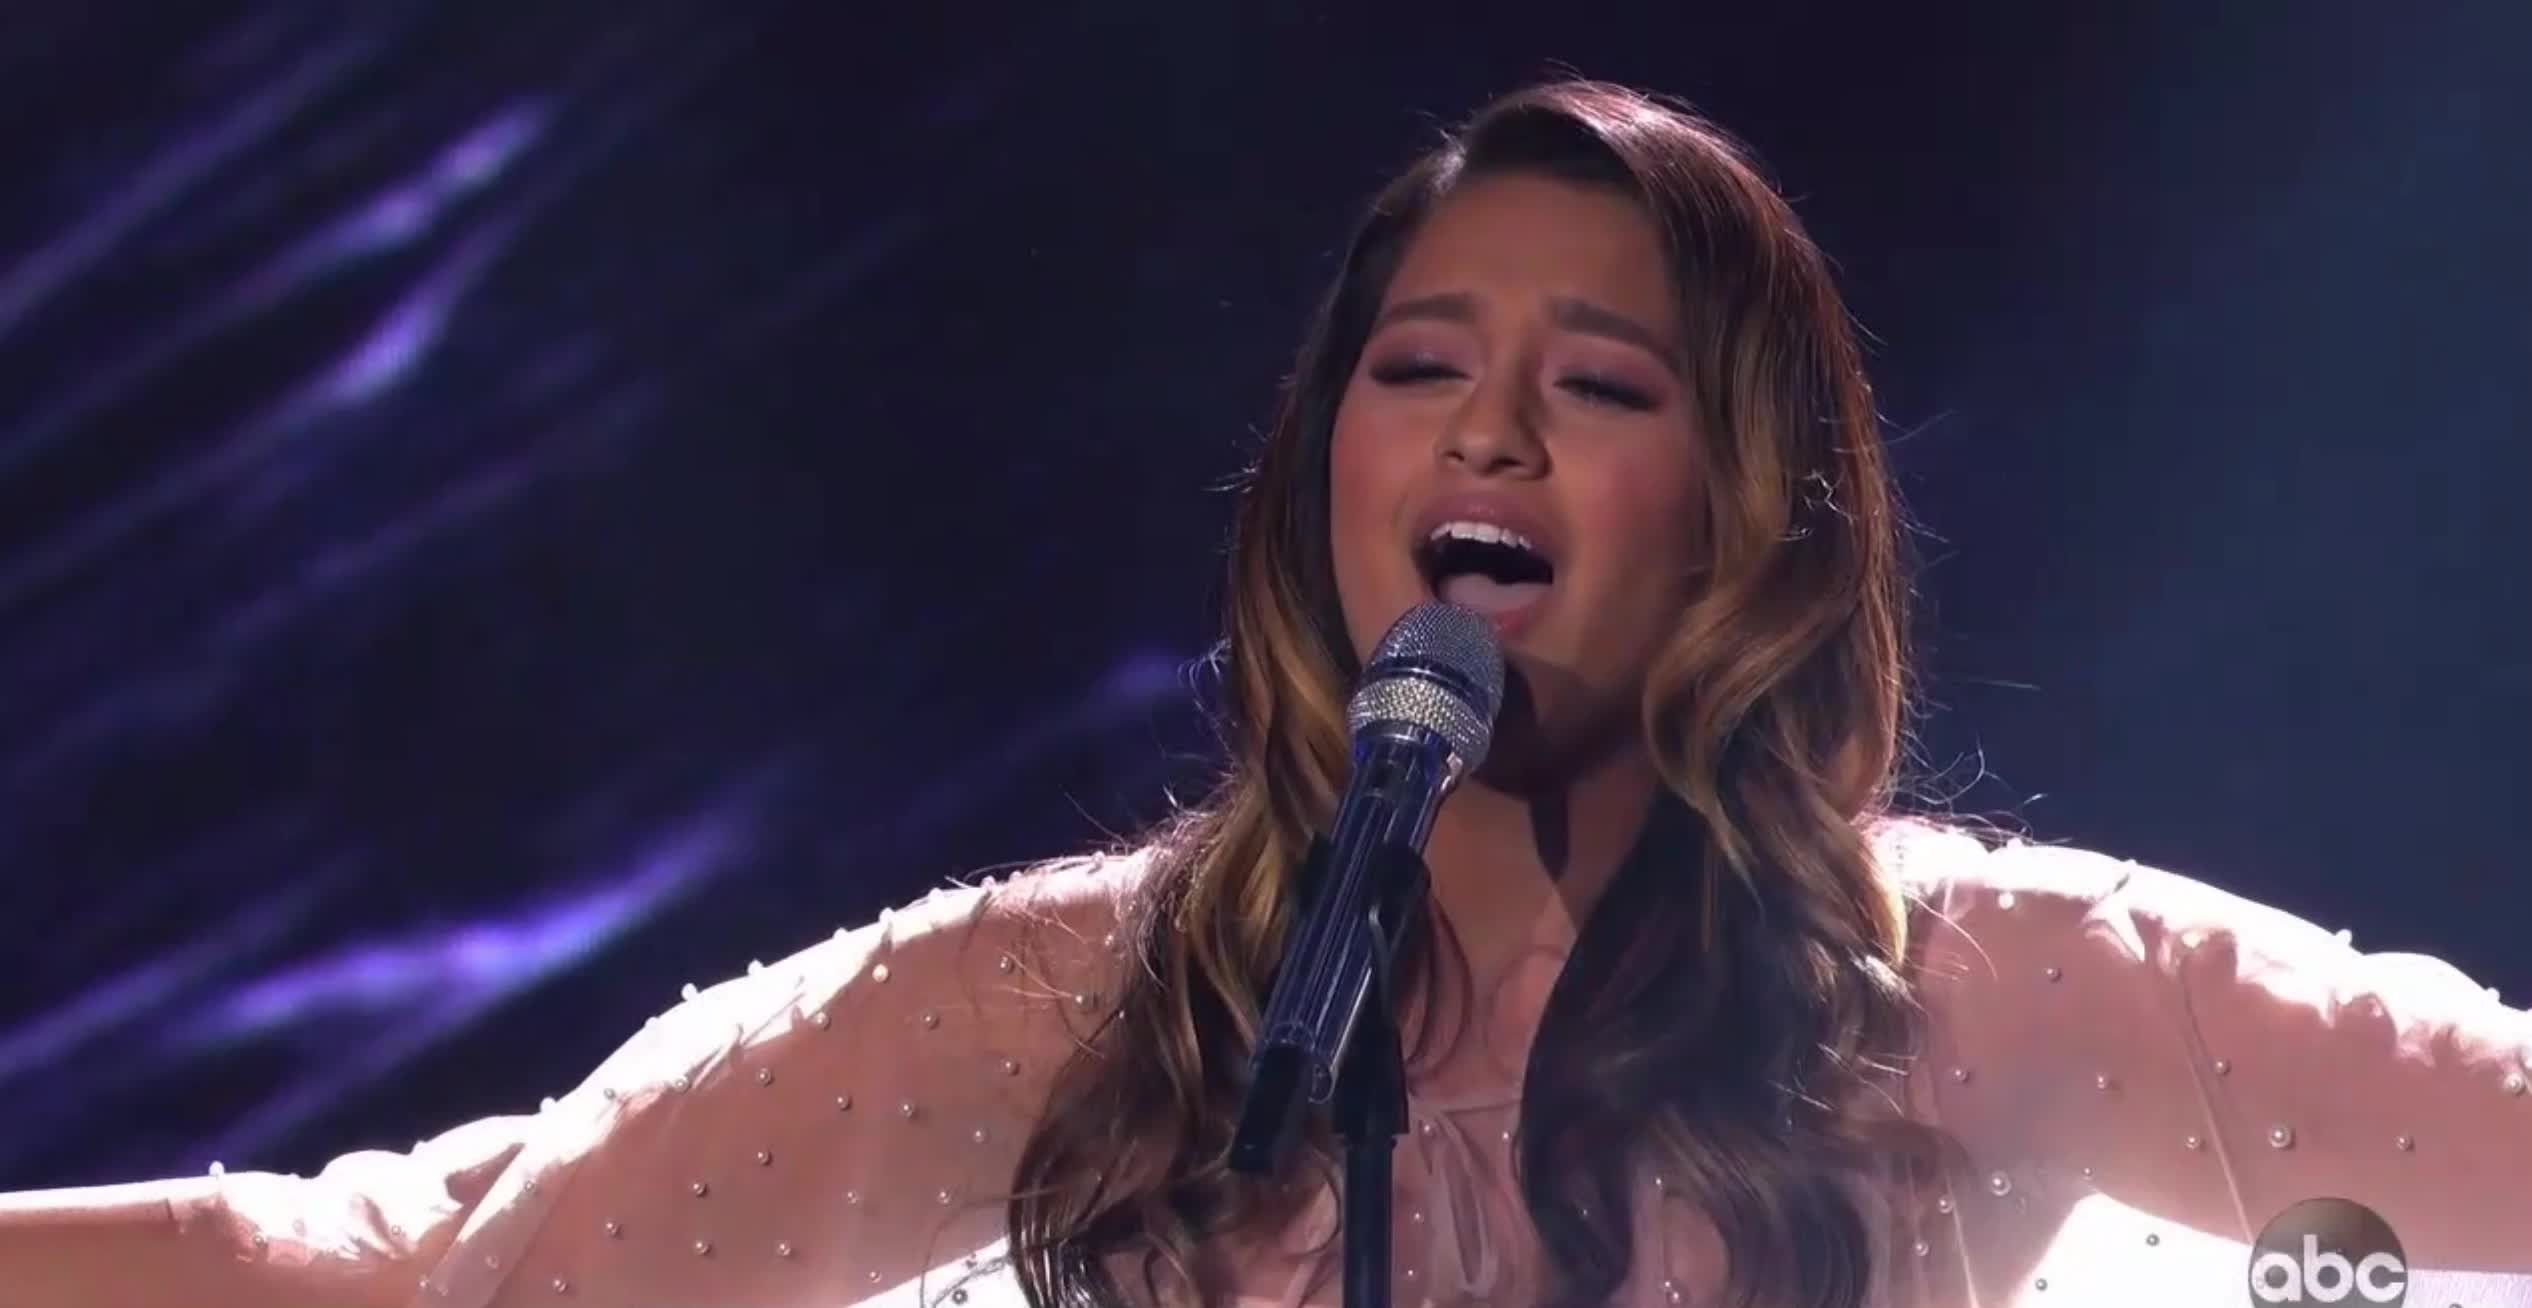 alyssa raghu, american idol, american idol season 17, americanidol, katy perry, lionel richie, luke bryan, ryan seacrest, season 17, singing, American Idol Alyssa on the High Note GIFs